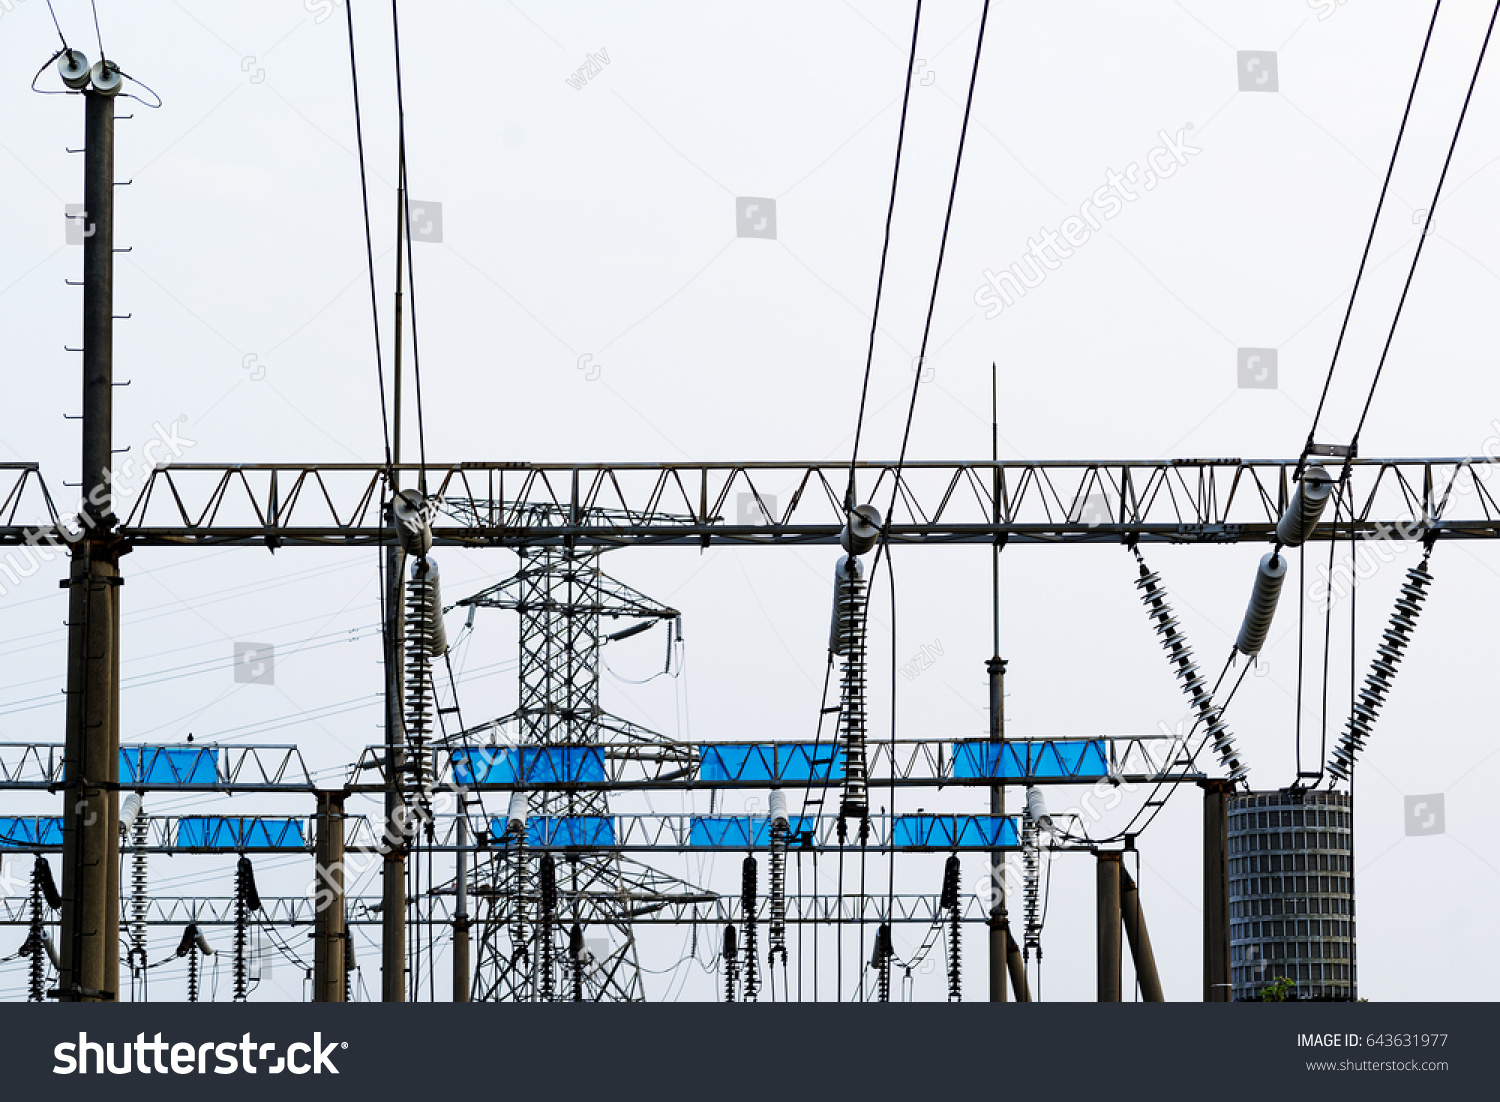 Transformer Substation High Tension Line Complex Grid Ez Canvas Overhead Wiring Diagram